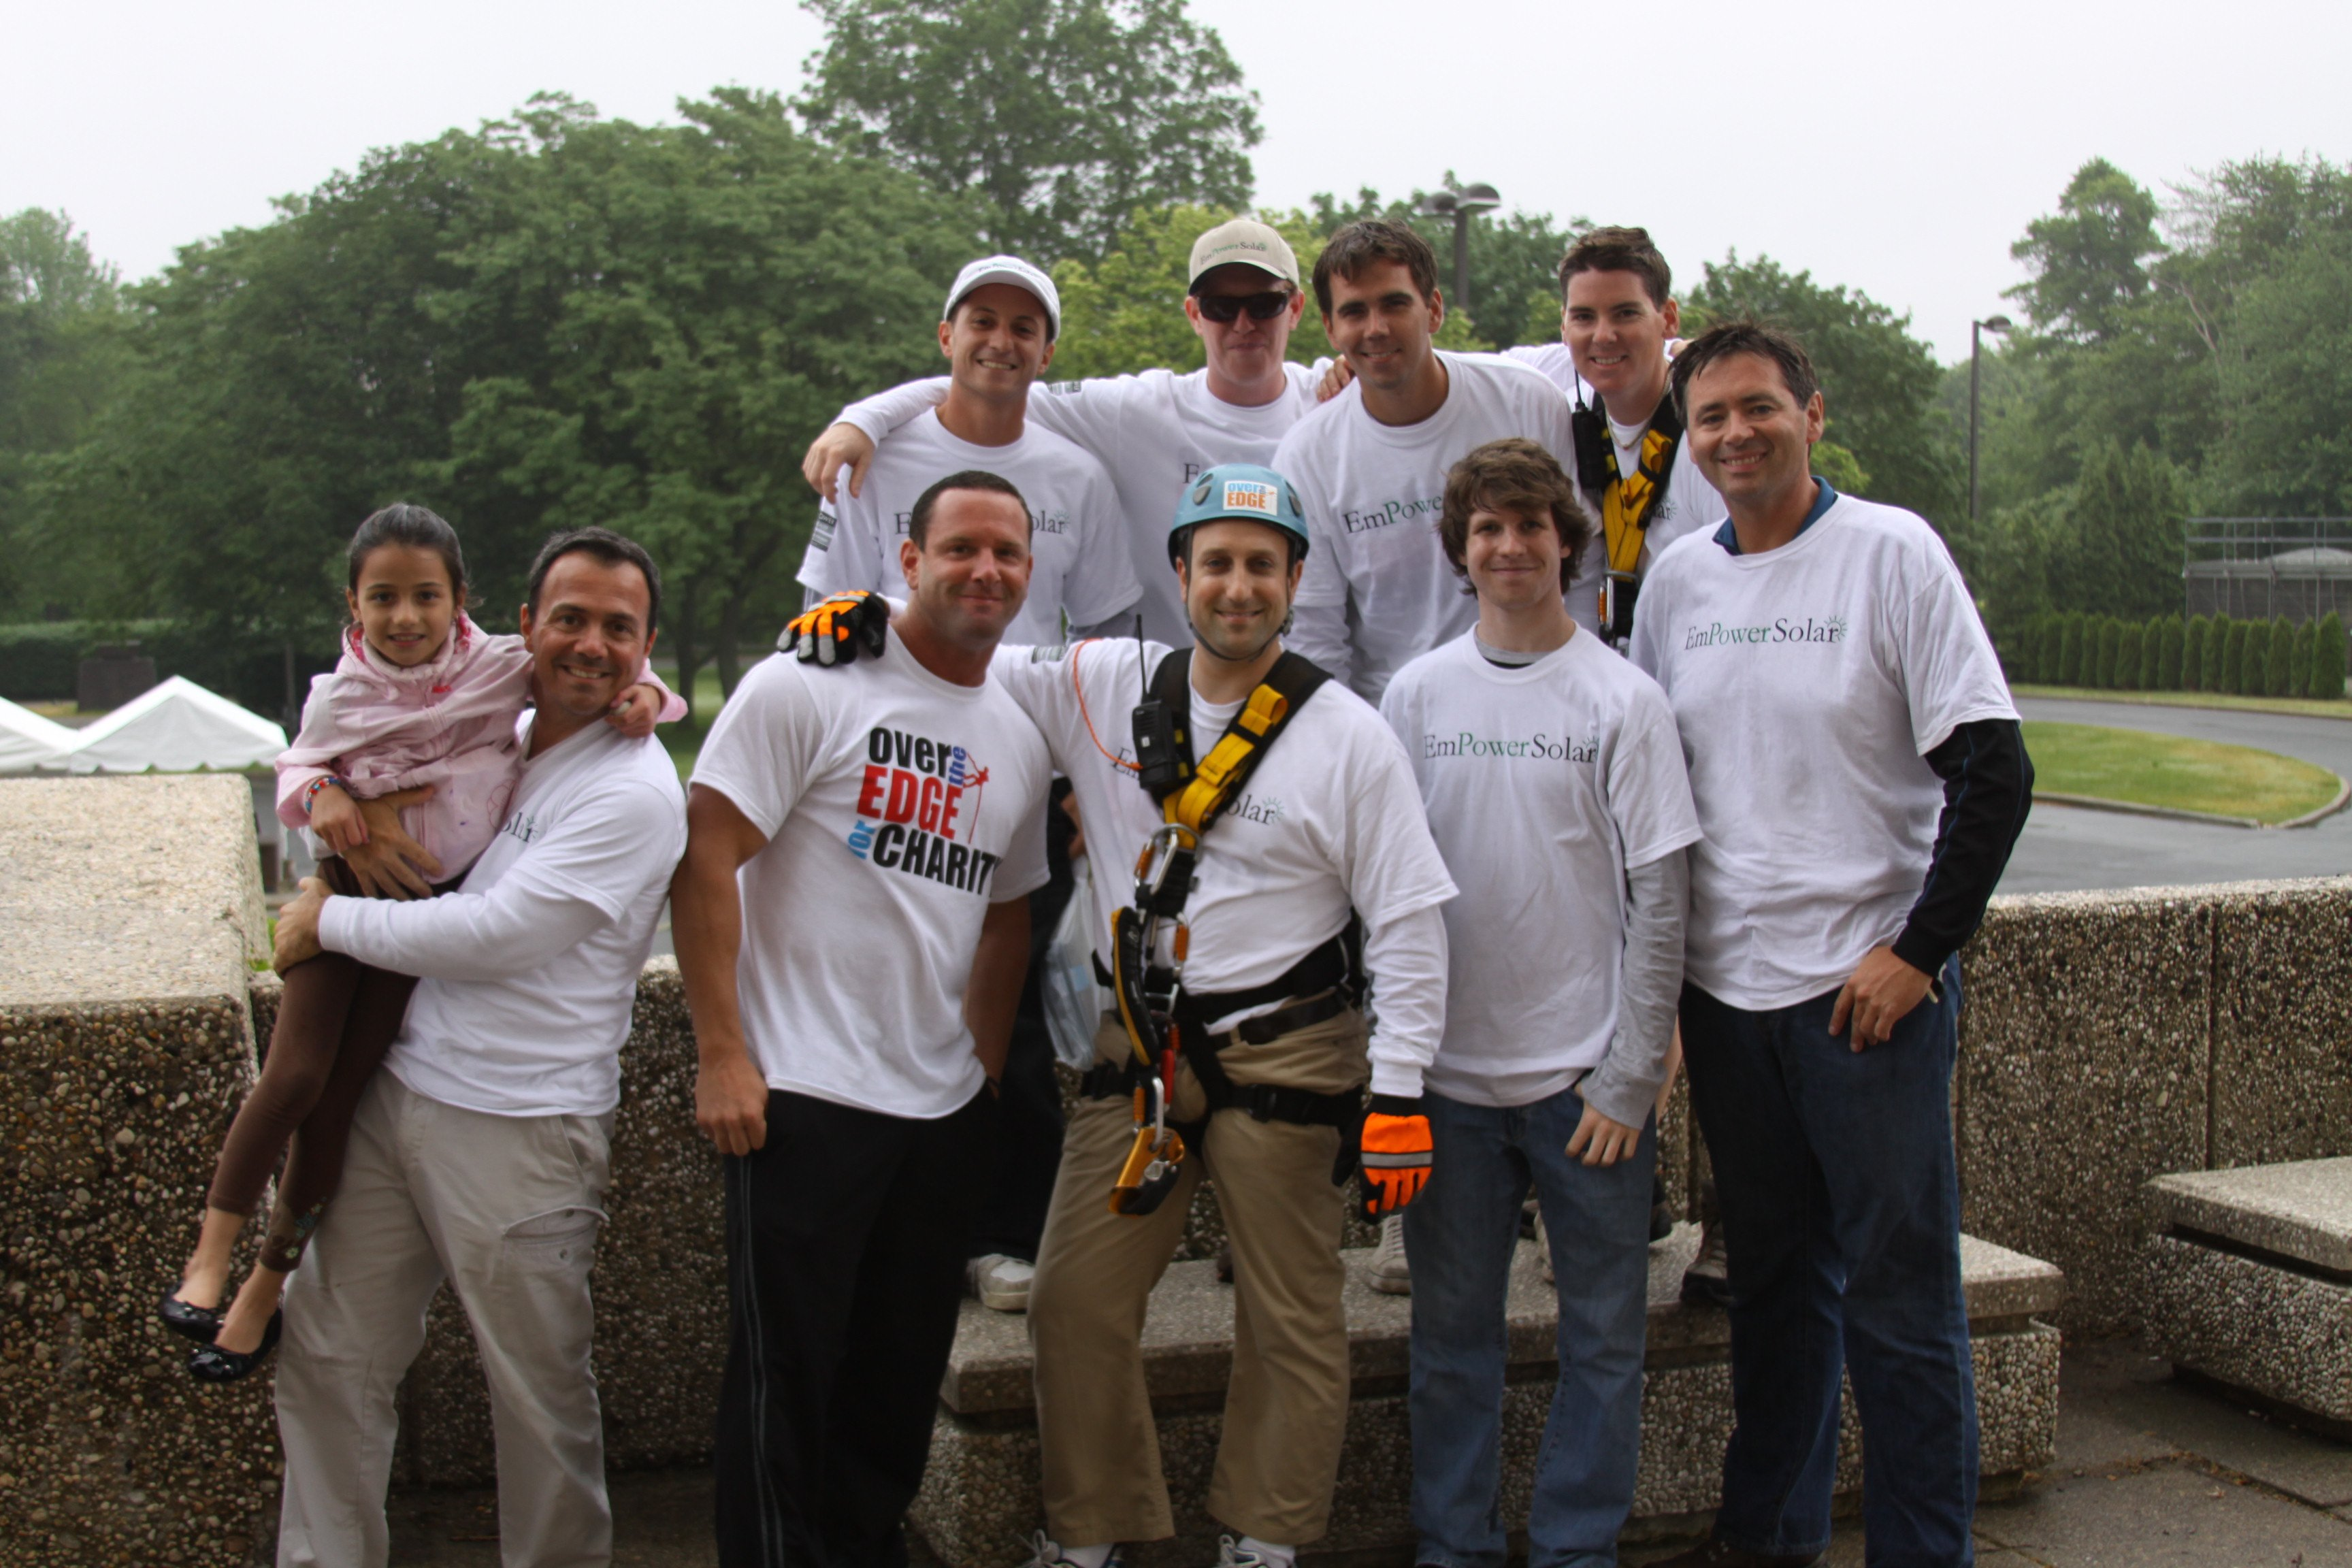 Over the Edge Volunteer Day SunPower by EmPower Solar